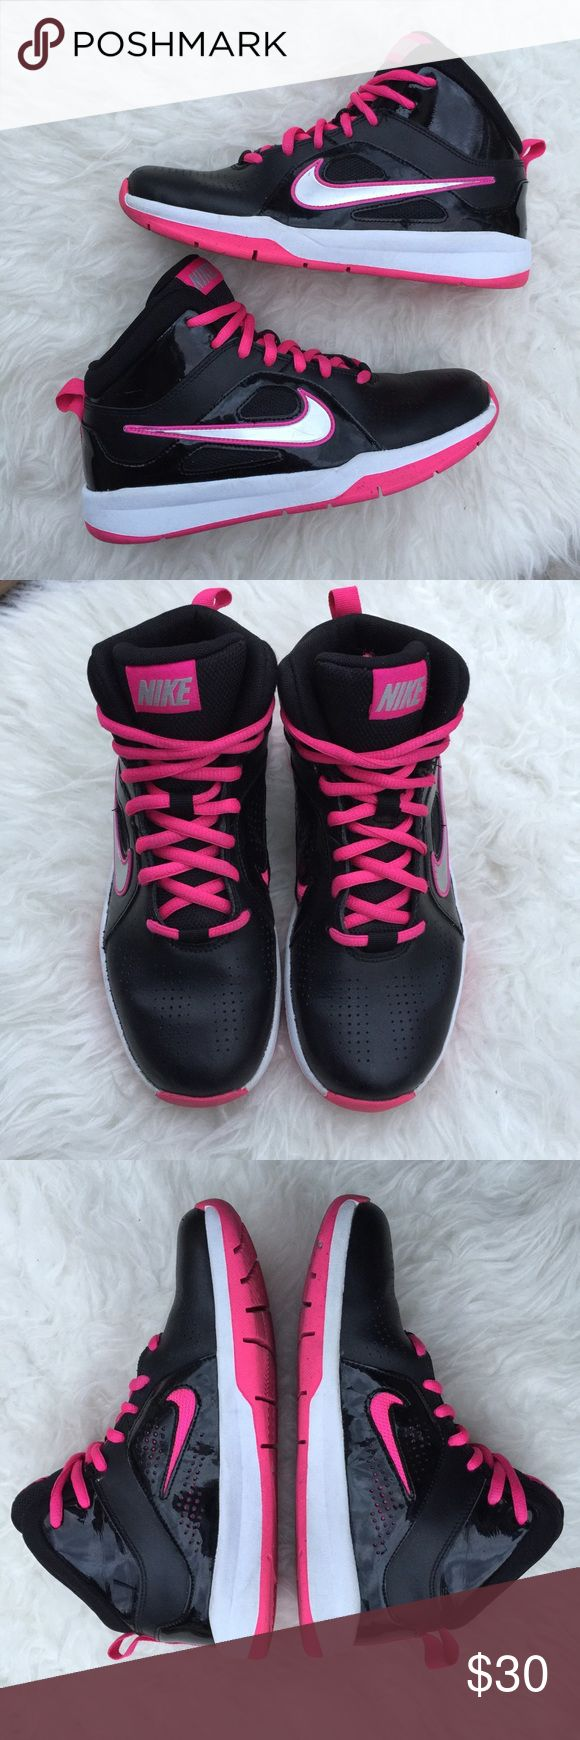 Youth nike black pink hightop. Black pink nikes. Excellent used condition youth size 5 black and pink high top nikes. Very little wear. Some scratches on the Nike emblem as photographed. Please review photos for details and wear. No trades. Youth size 5 can also fit women's size 6.5 according to their size chart. Nike Shoes Sneakers